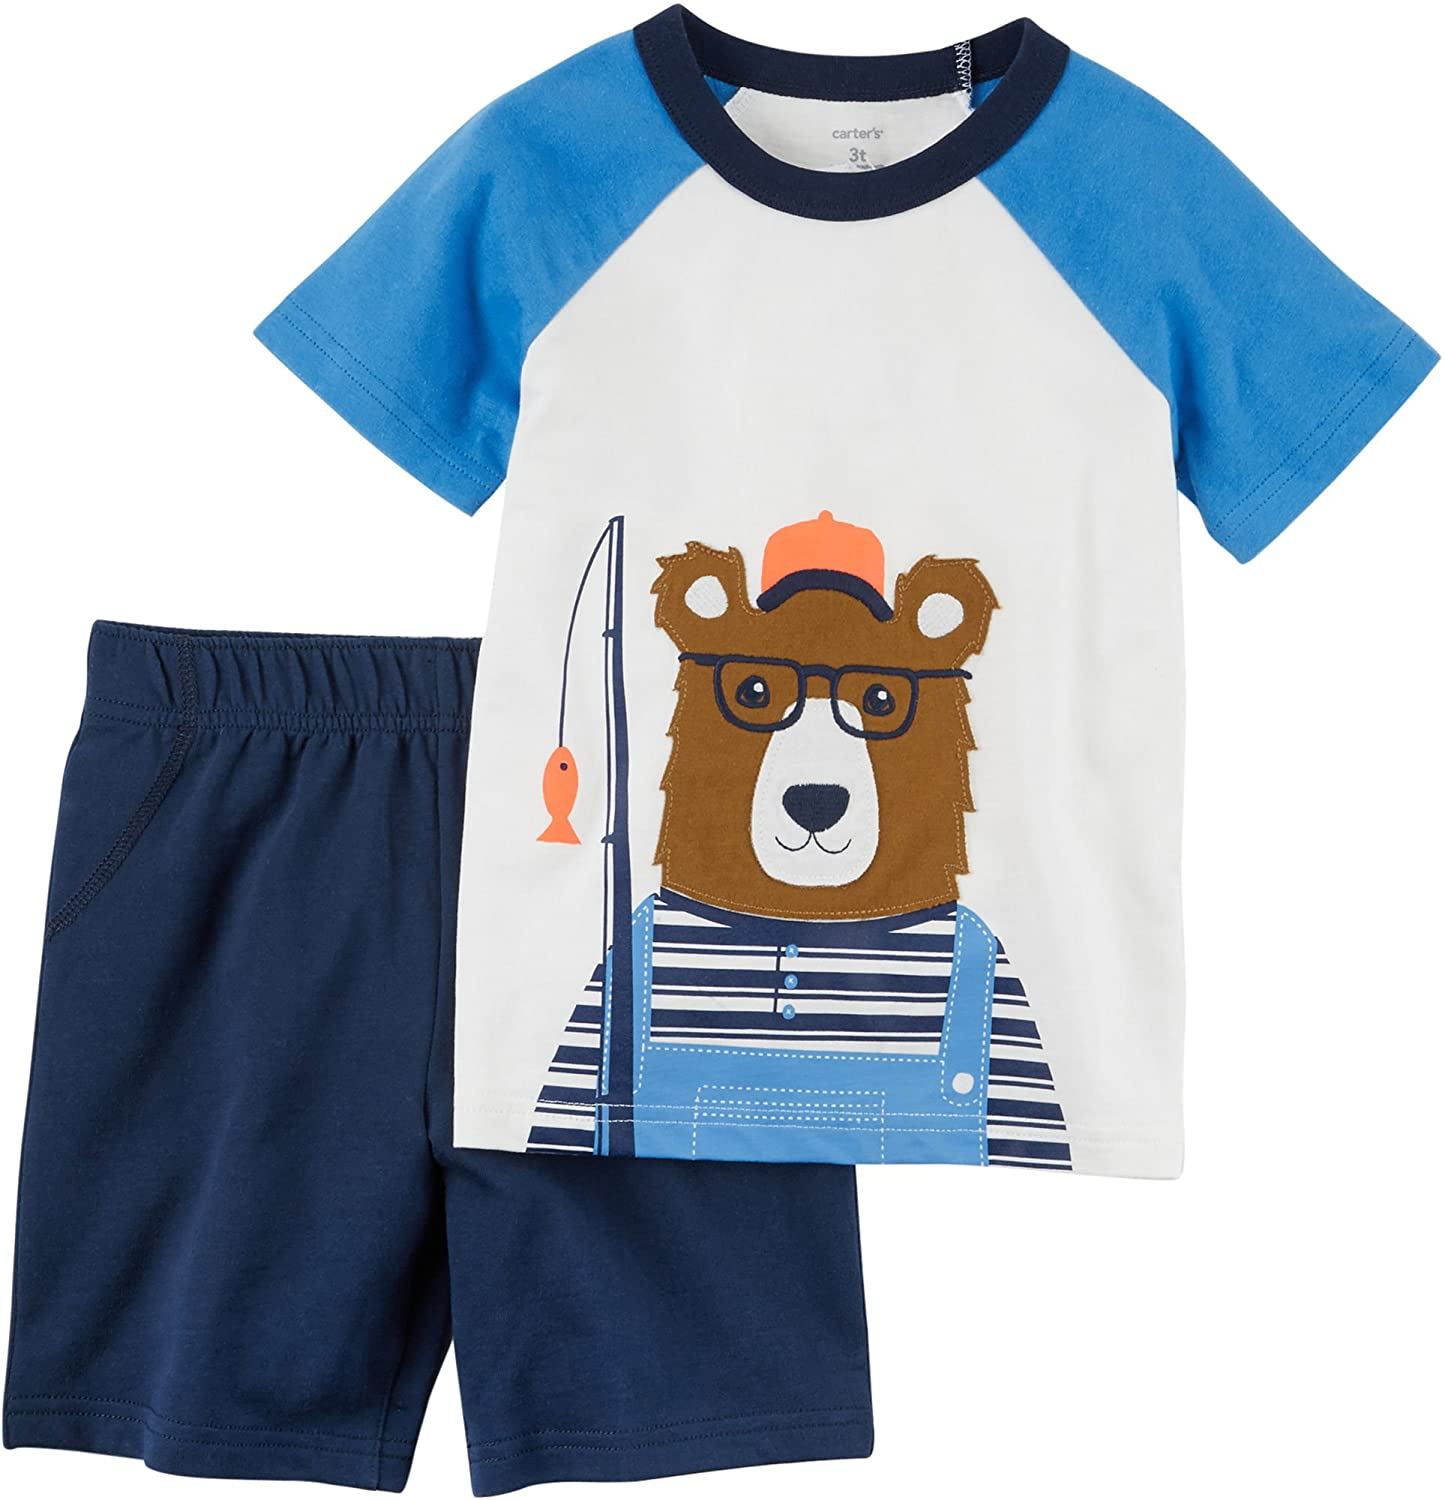 Carters Baby Boys Jersey Bear Tee and French Terry Shorts Set 3 Months